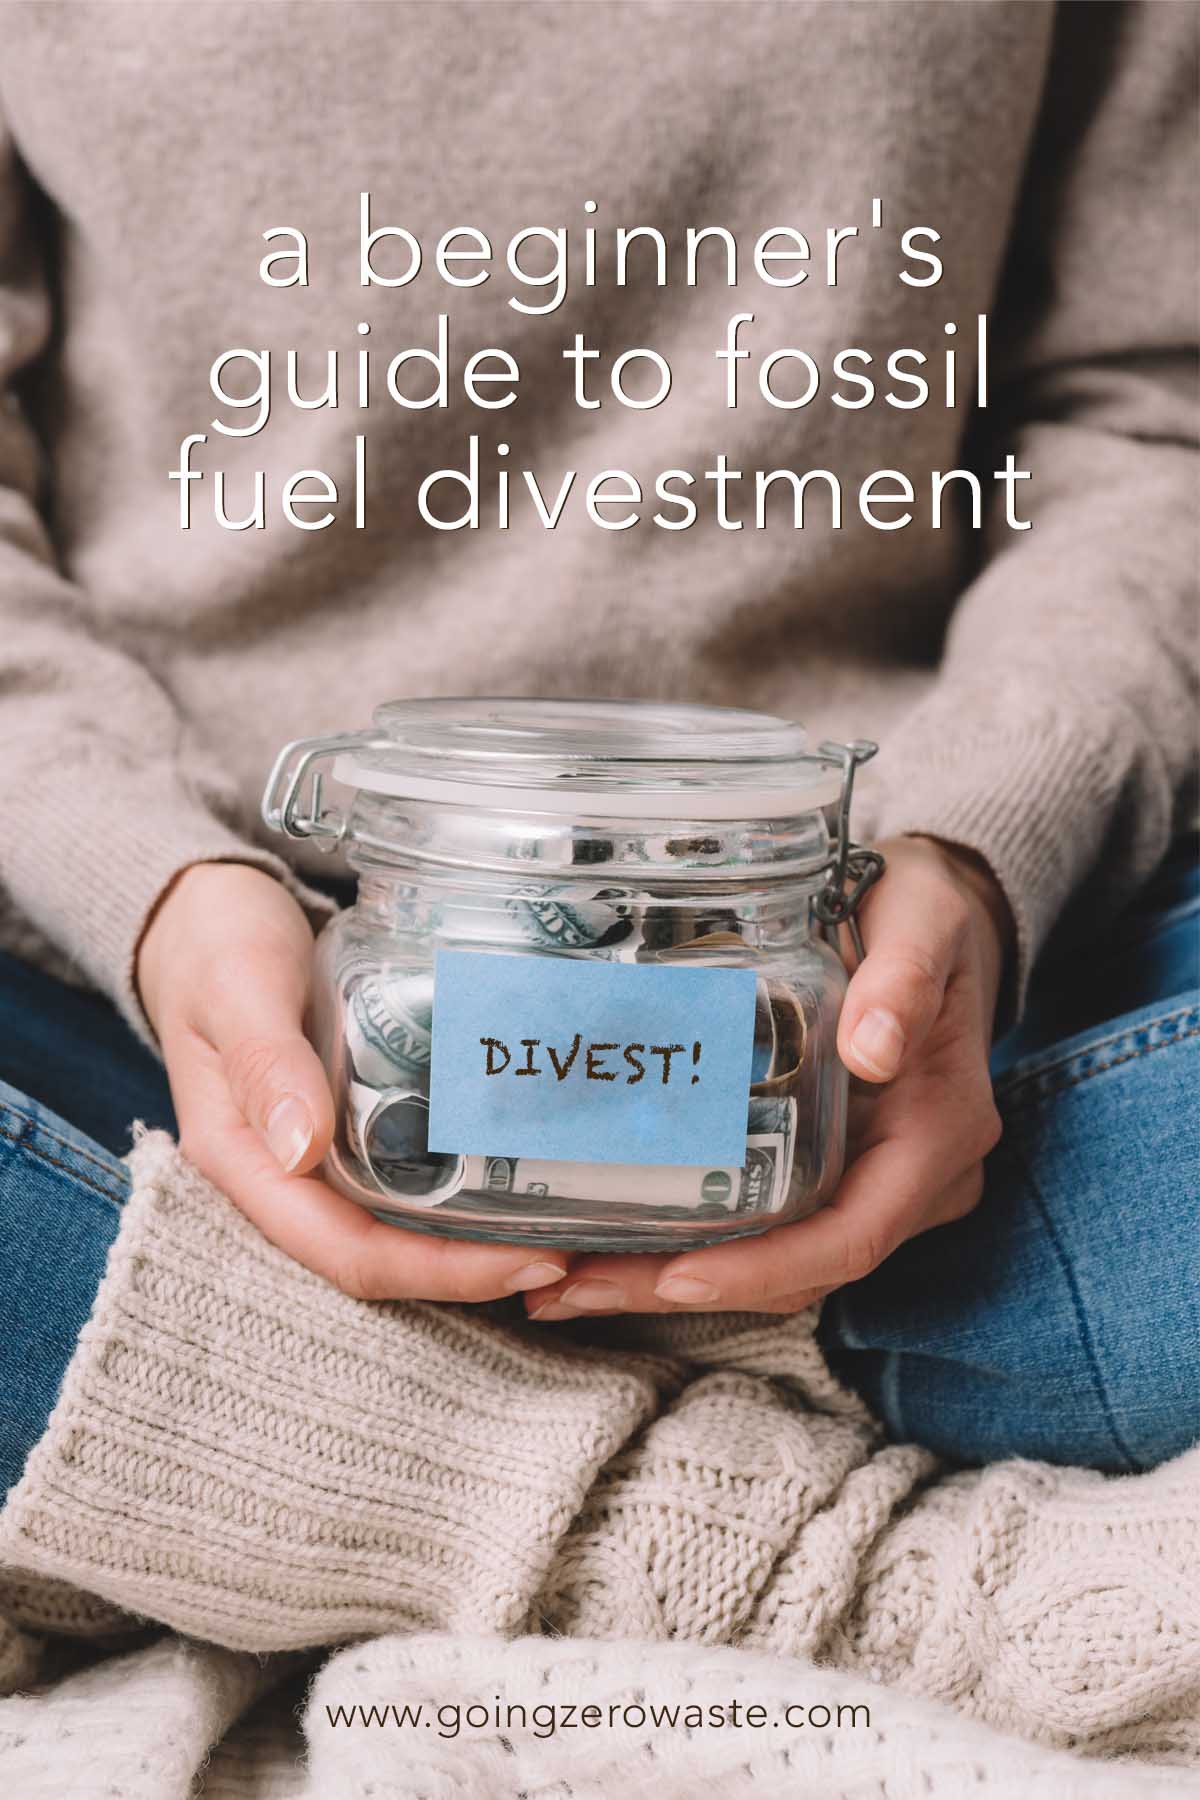 A Beginner's guide to fossil fuel divestment from www.goingzerowaste.com #save #frugal #investing #ecofriendly #sustainable #zerowaste